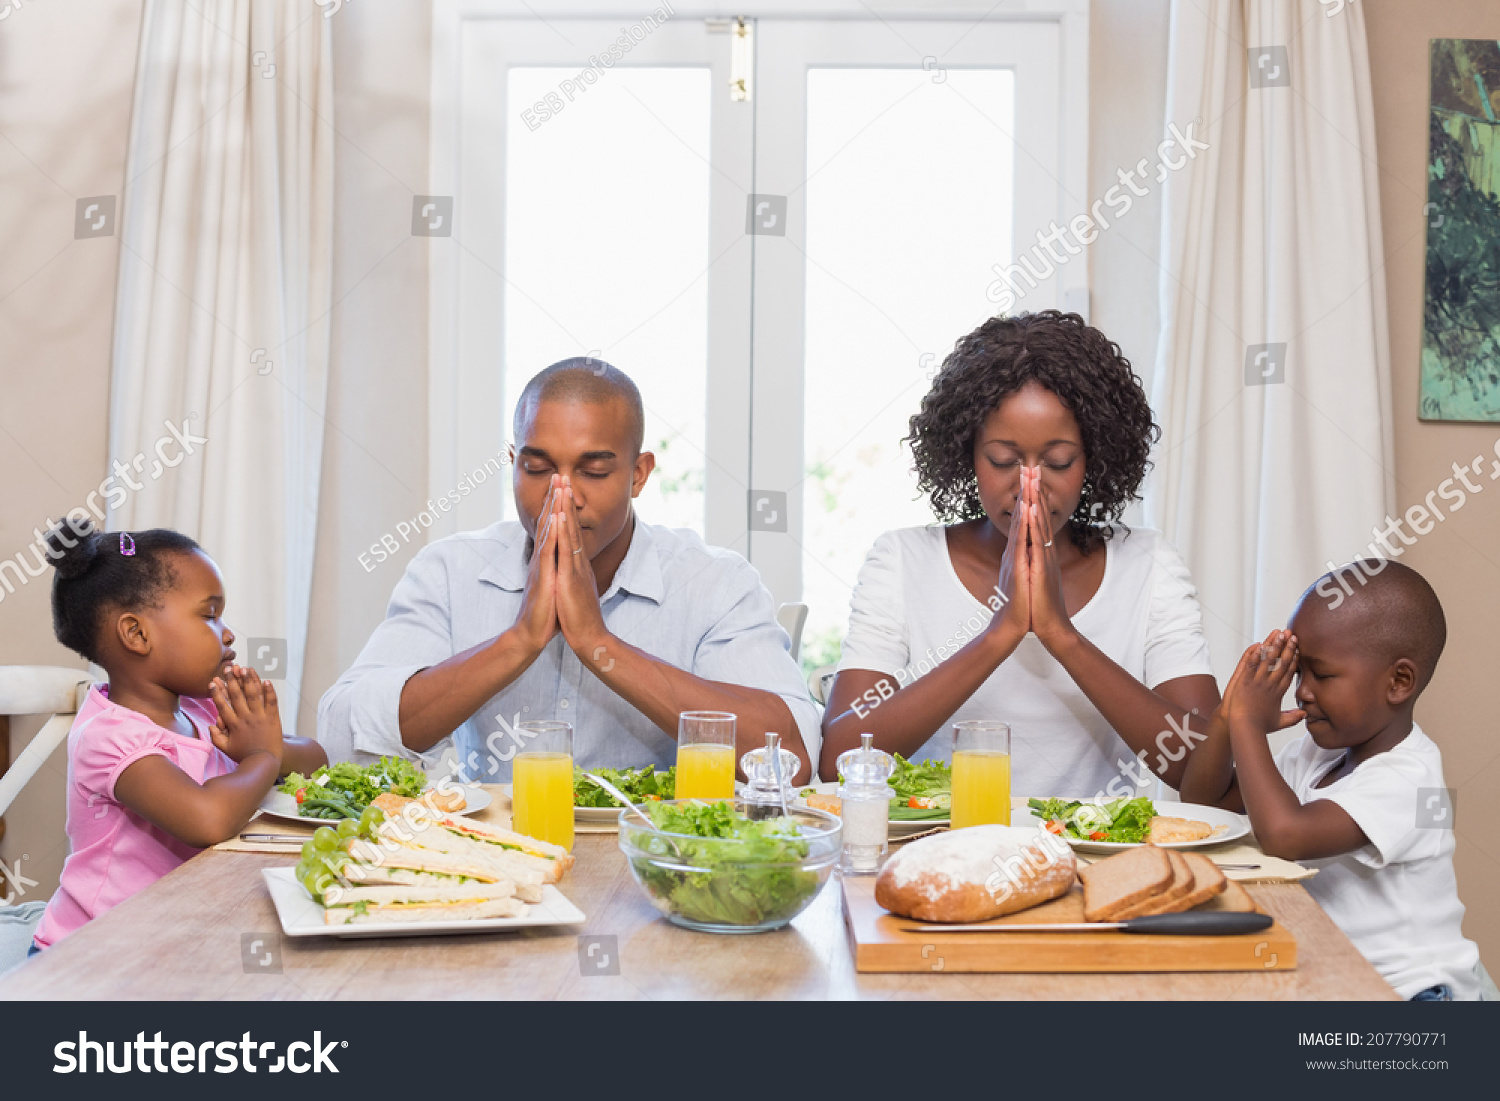 Happy Family Saying Grace Before Meal Stock Photo (100% Legal ...